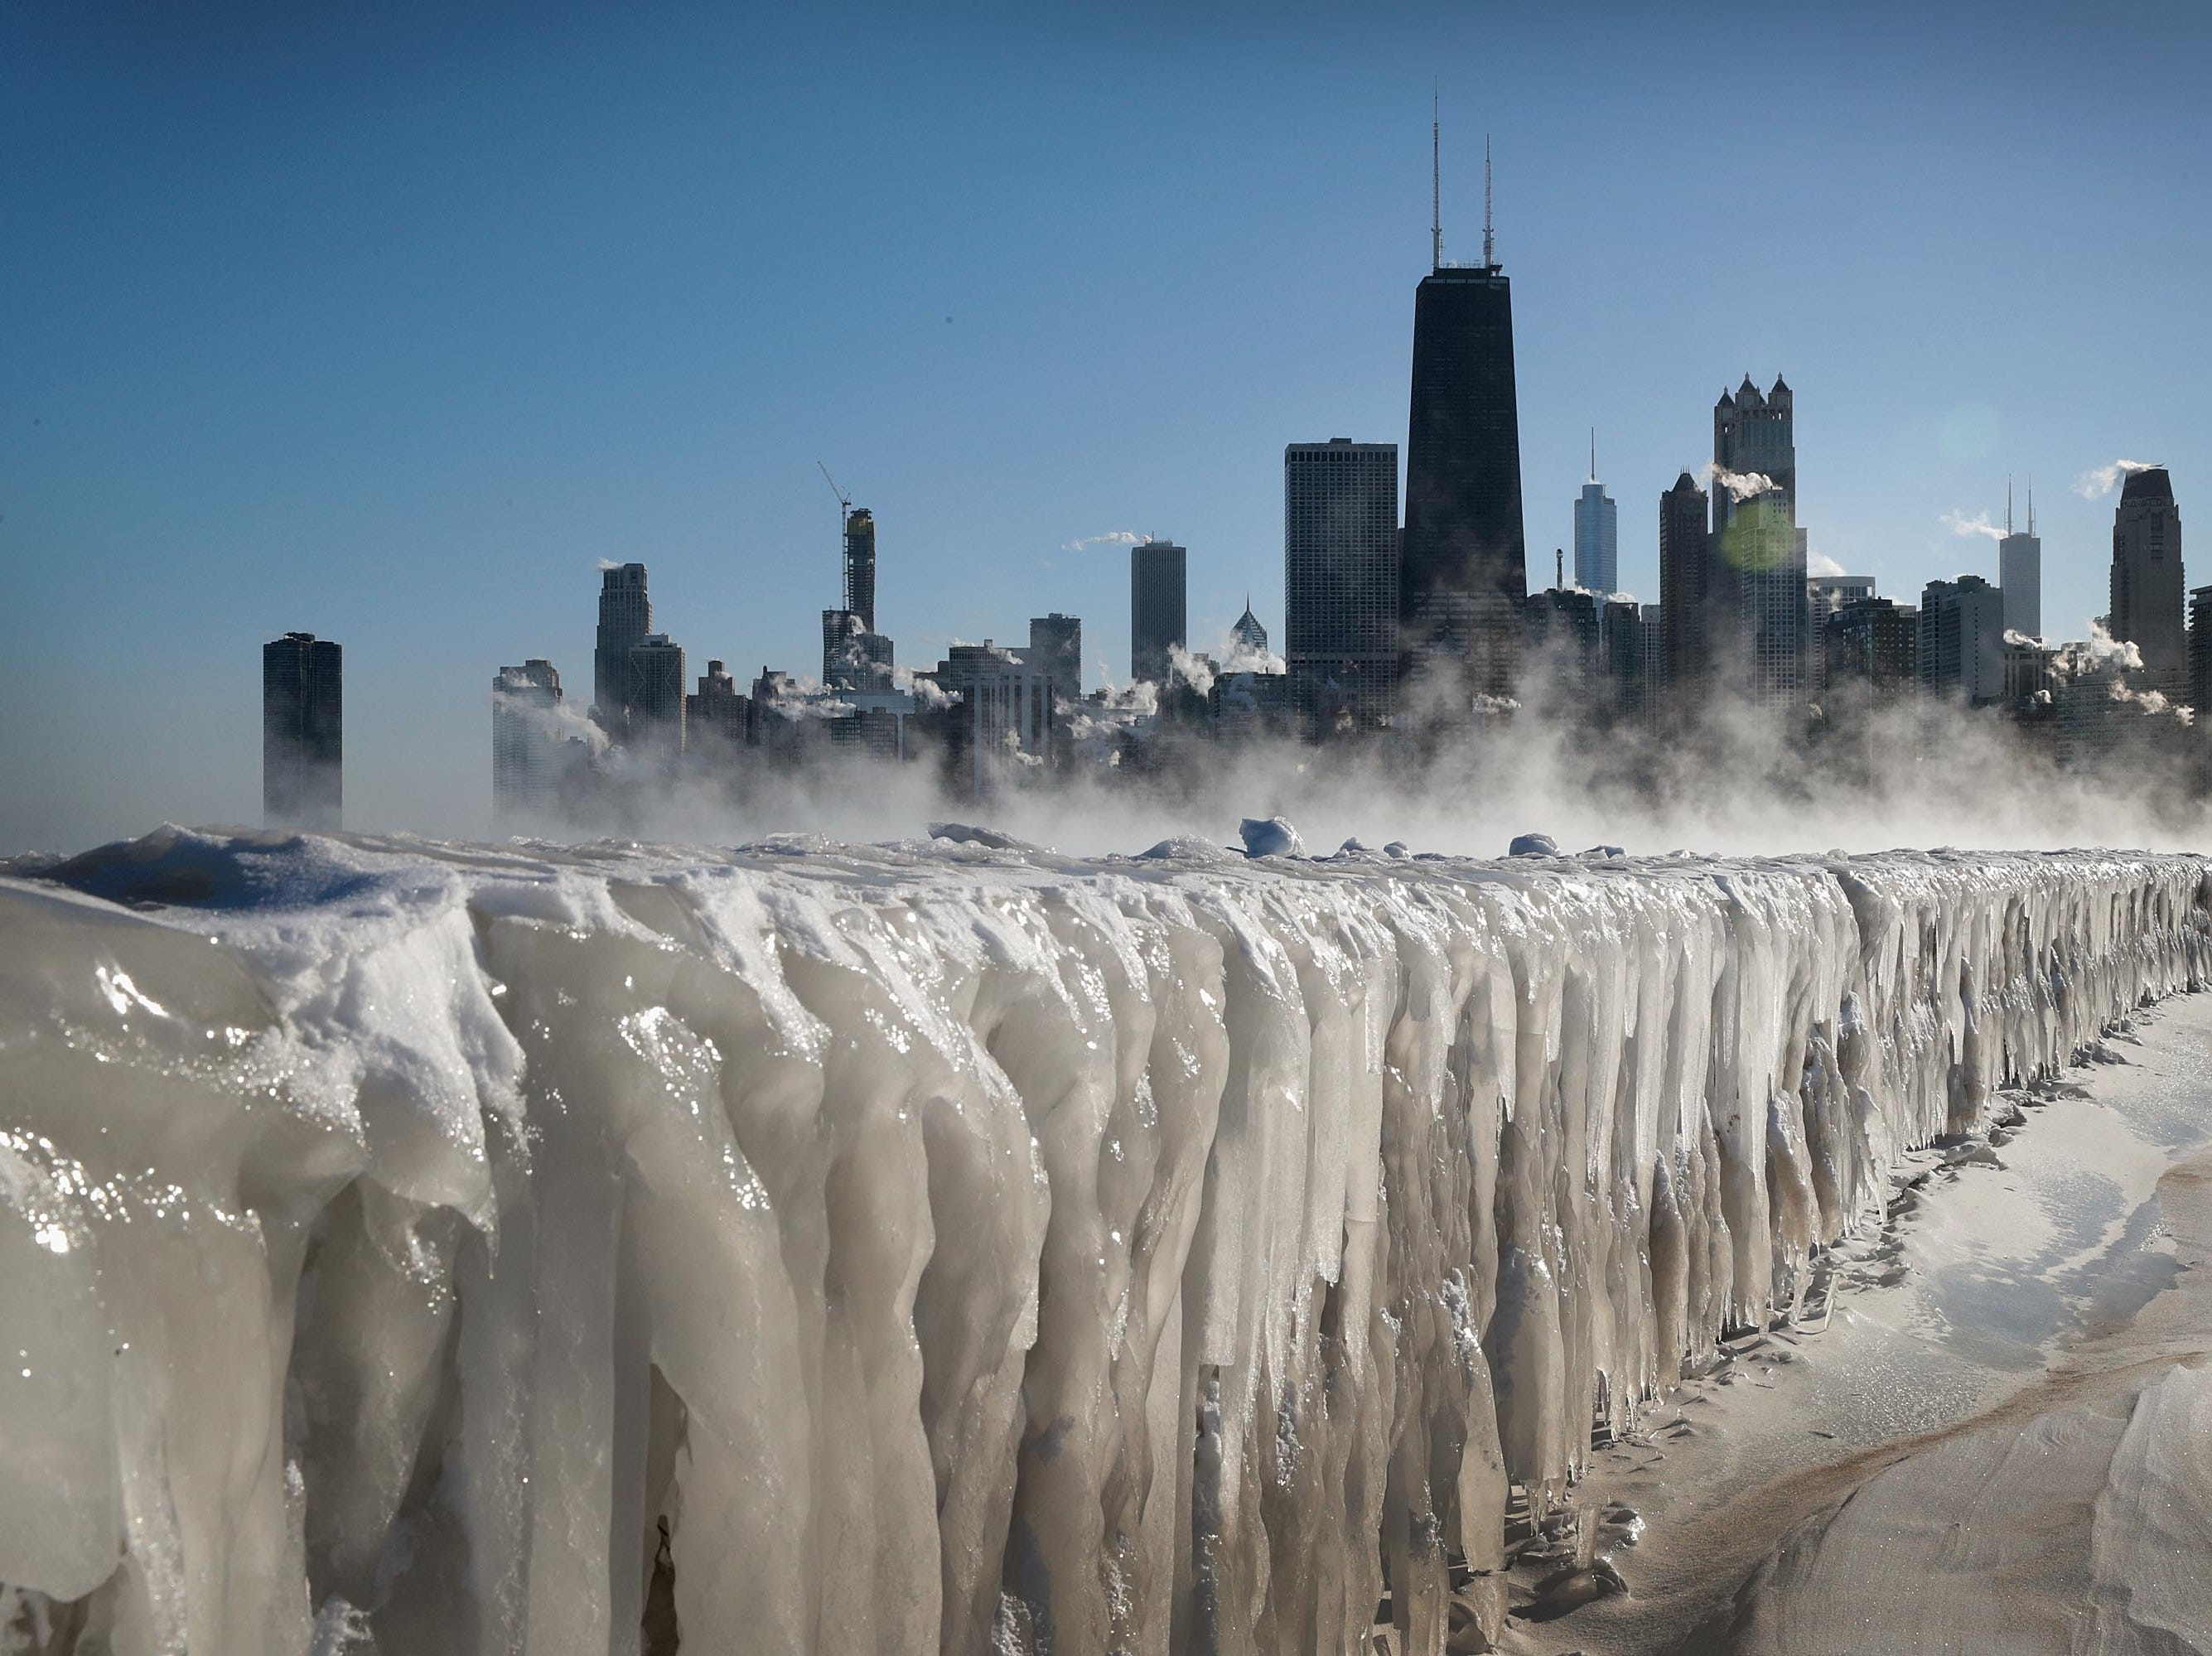 Ice covers the Lake Michigan shoreline on January 30, 2019 in Chicago, Illinois.